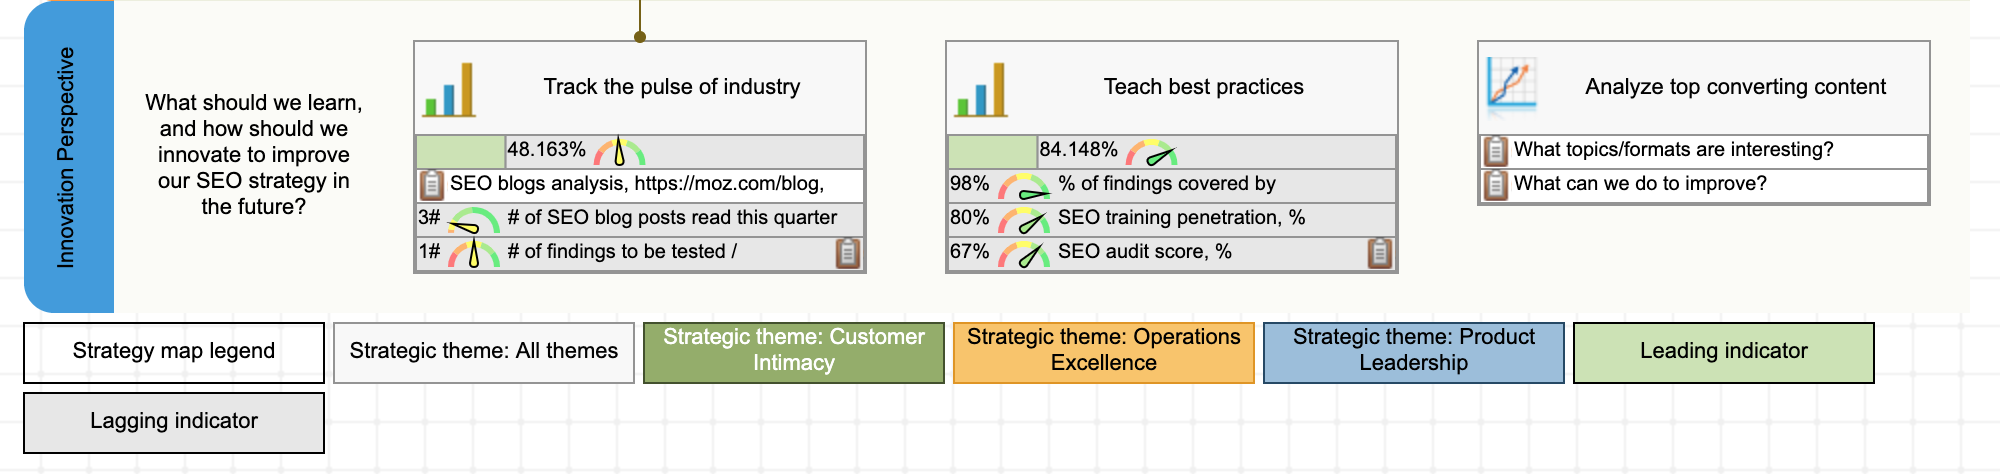 Innovation perspective at SEO strategy map